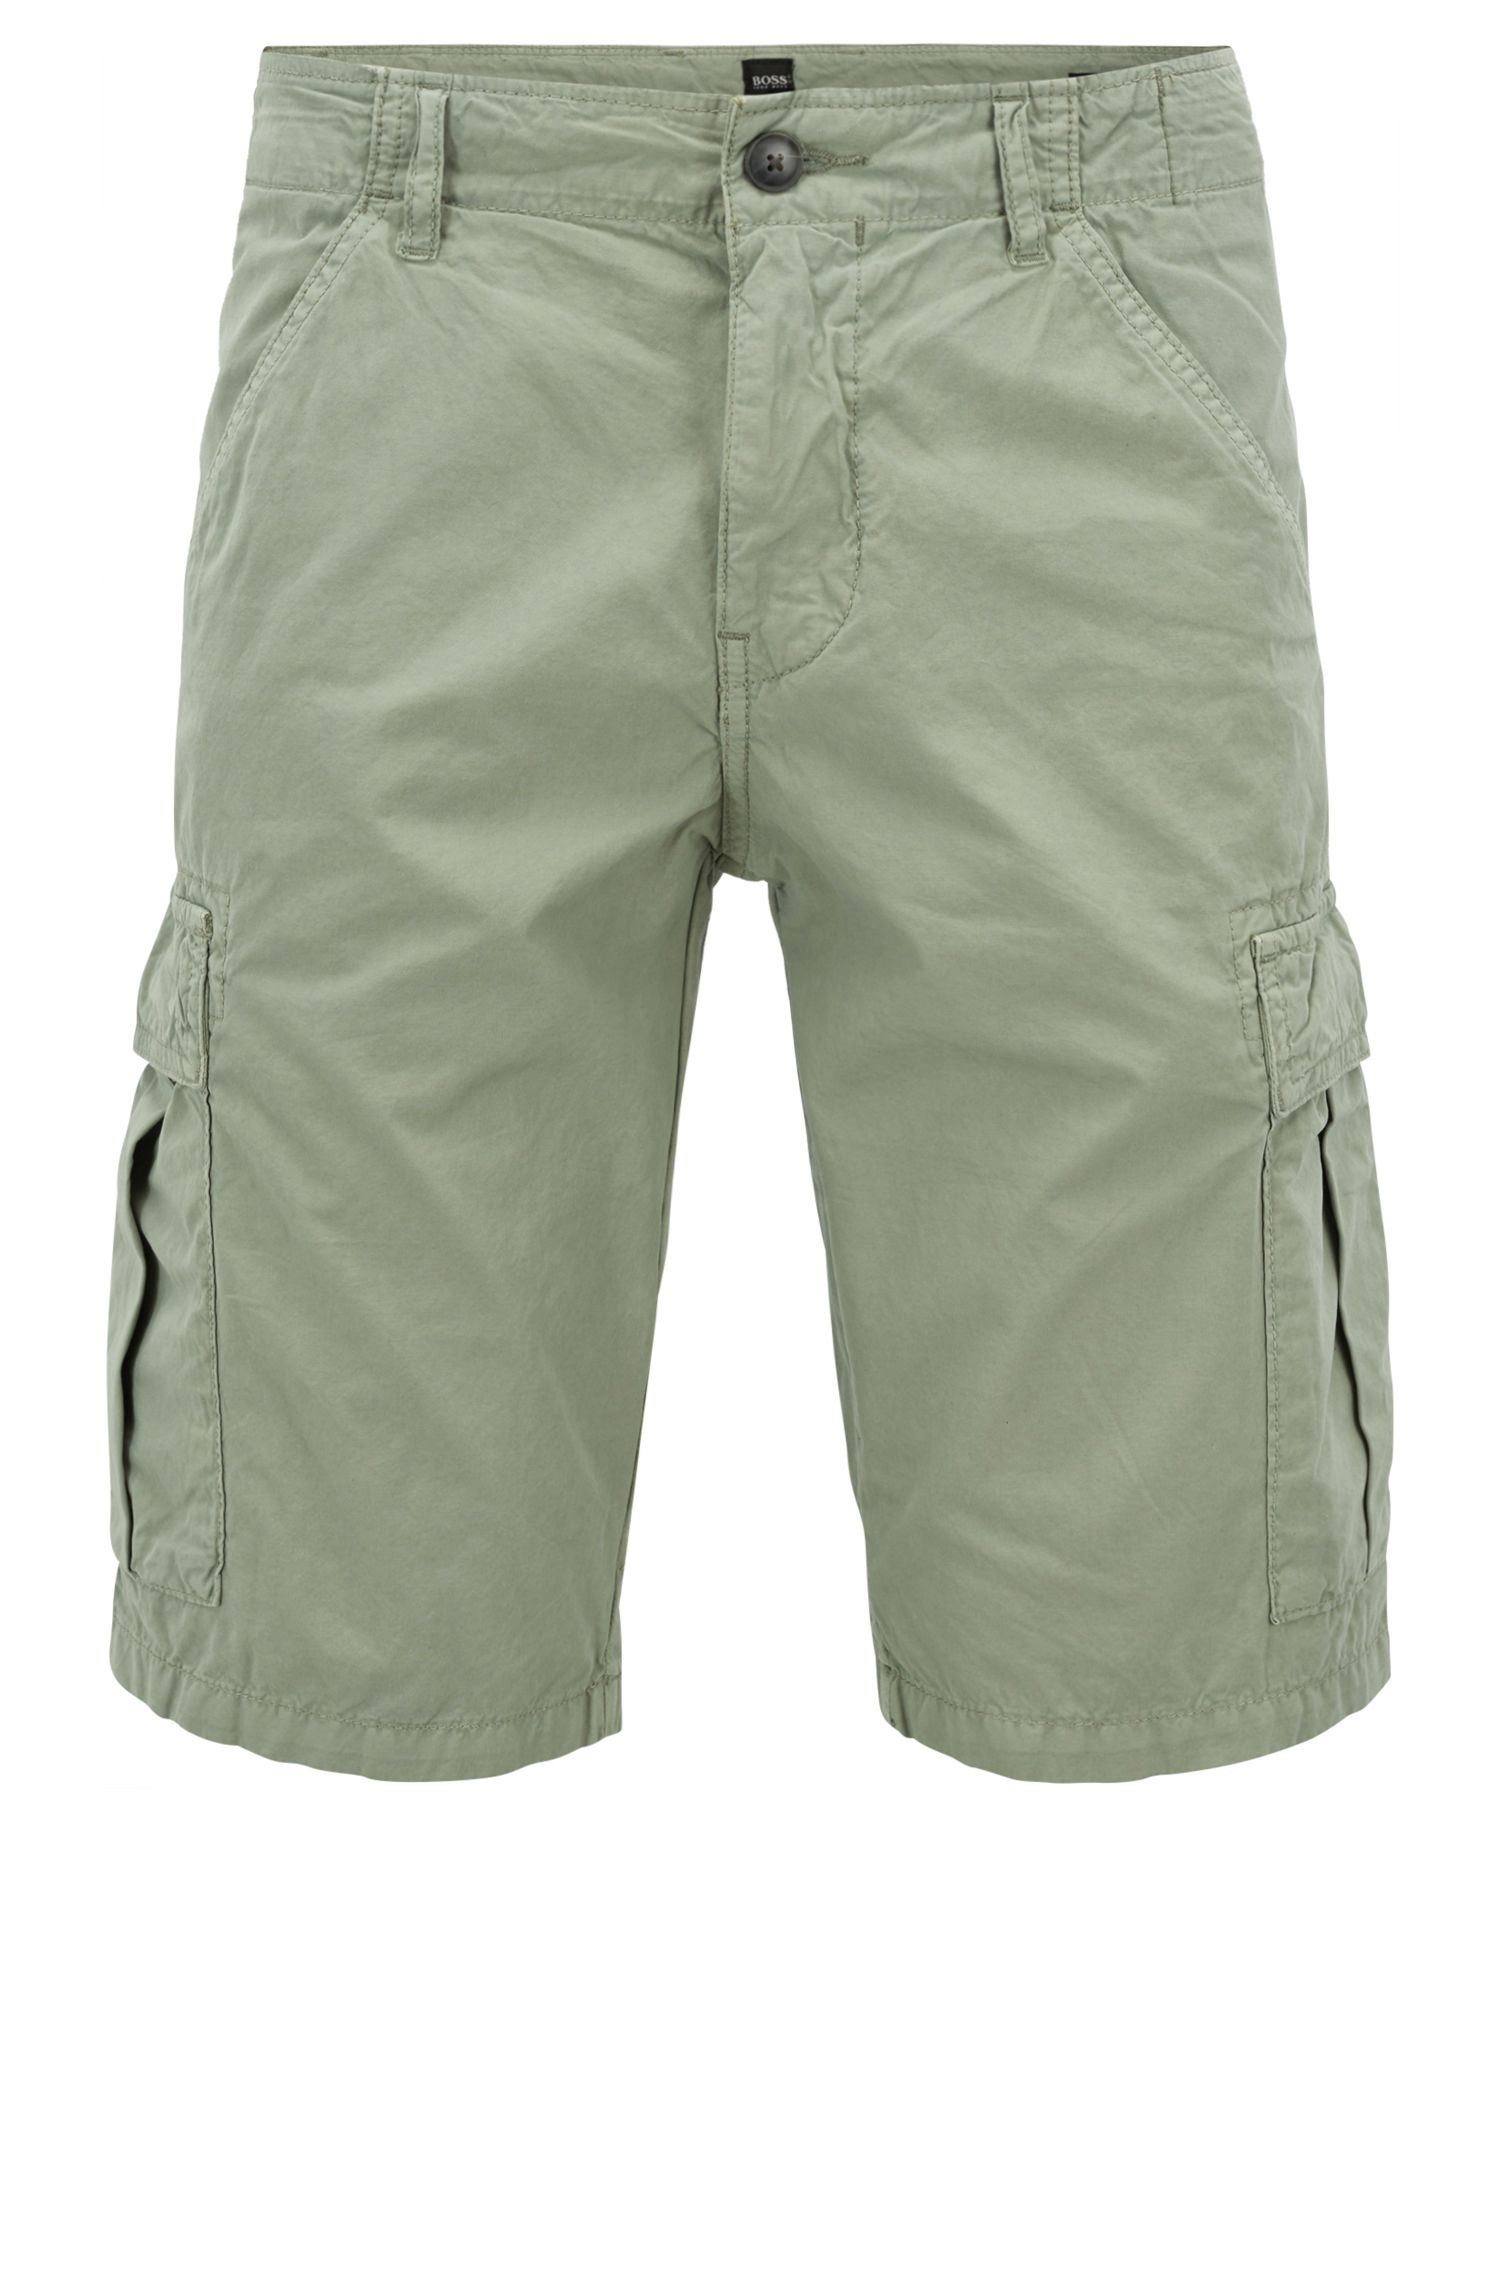 Tapered-leg shorts in double-dyed cotton poplin